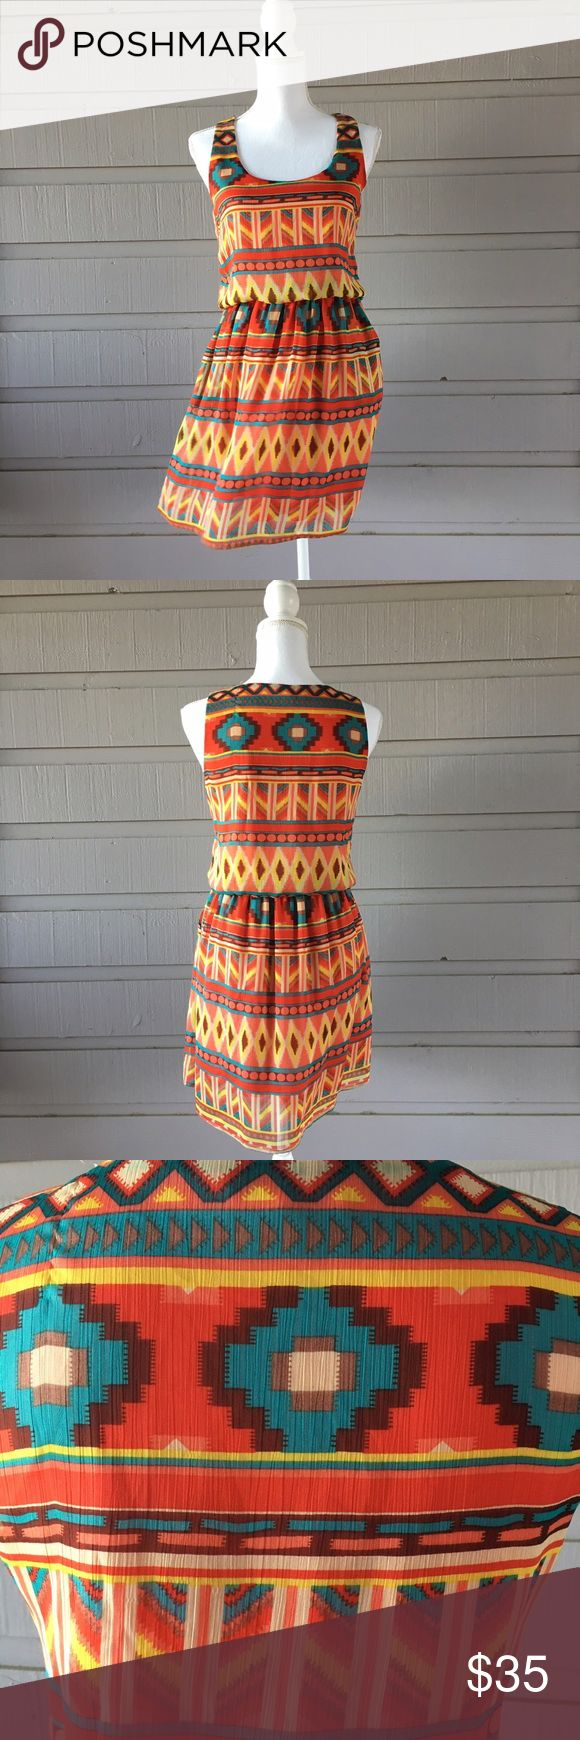 Southwestern/ aztec print dress Fully lined with pockets! Questions welcome, all offers considered. tea n rose Dresses